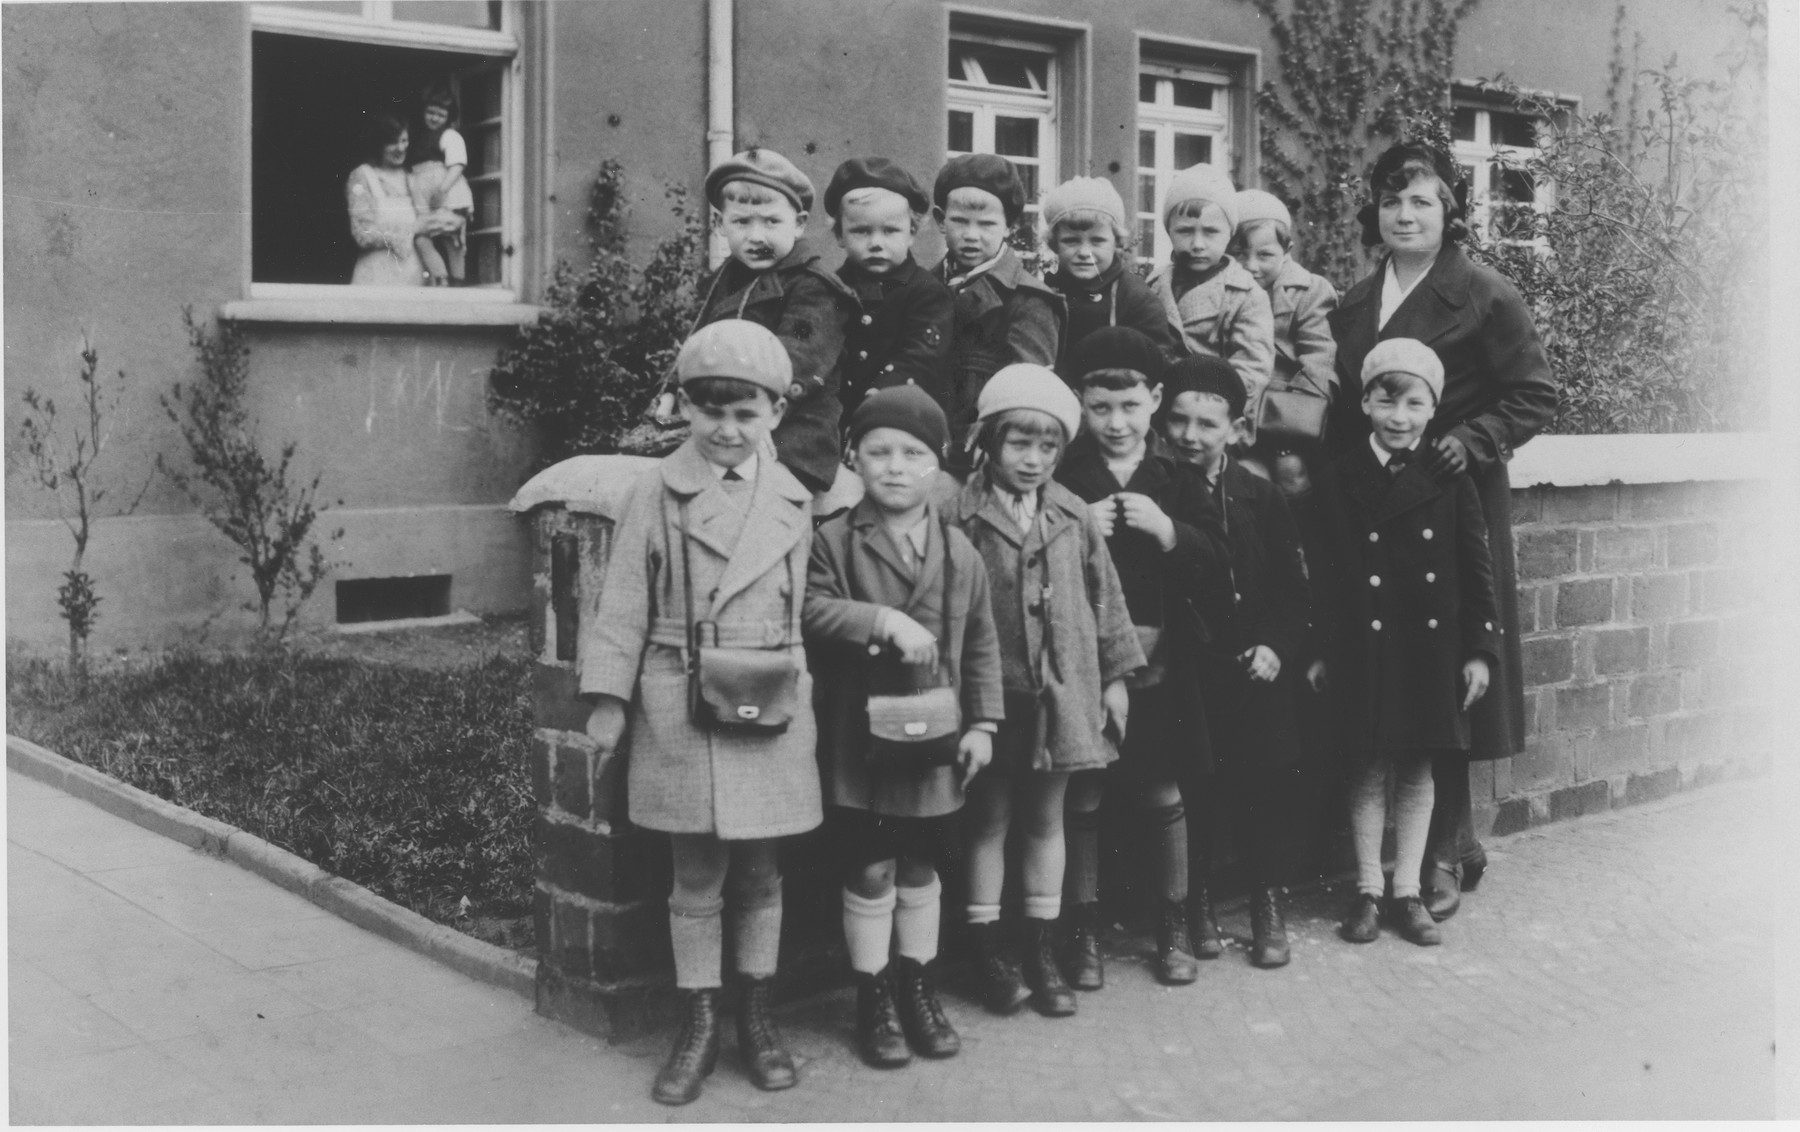 Pupils of the Jüdische Volksschule pose in front of the school on Lutzowstrasse in Köln.  Among those pictured is Manfred Loeb (standing in front of the teacher).